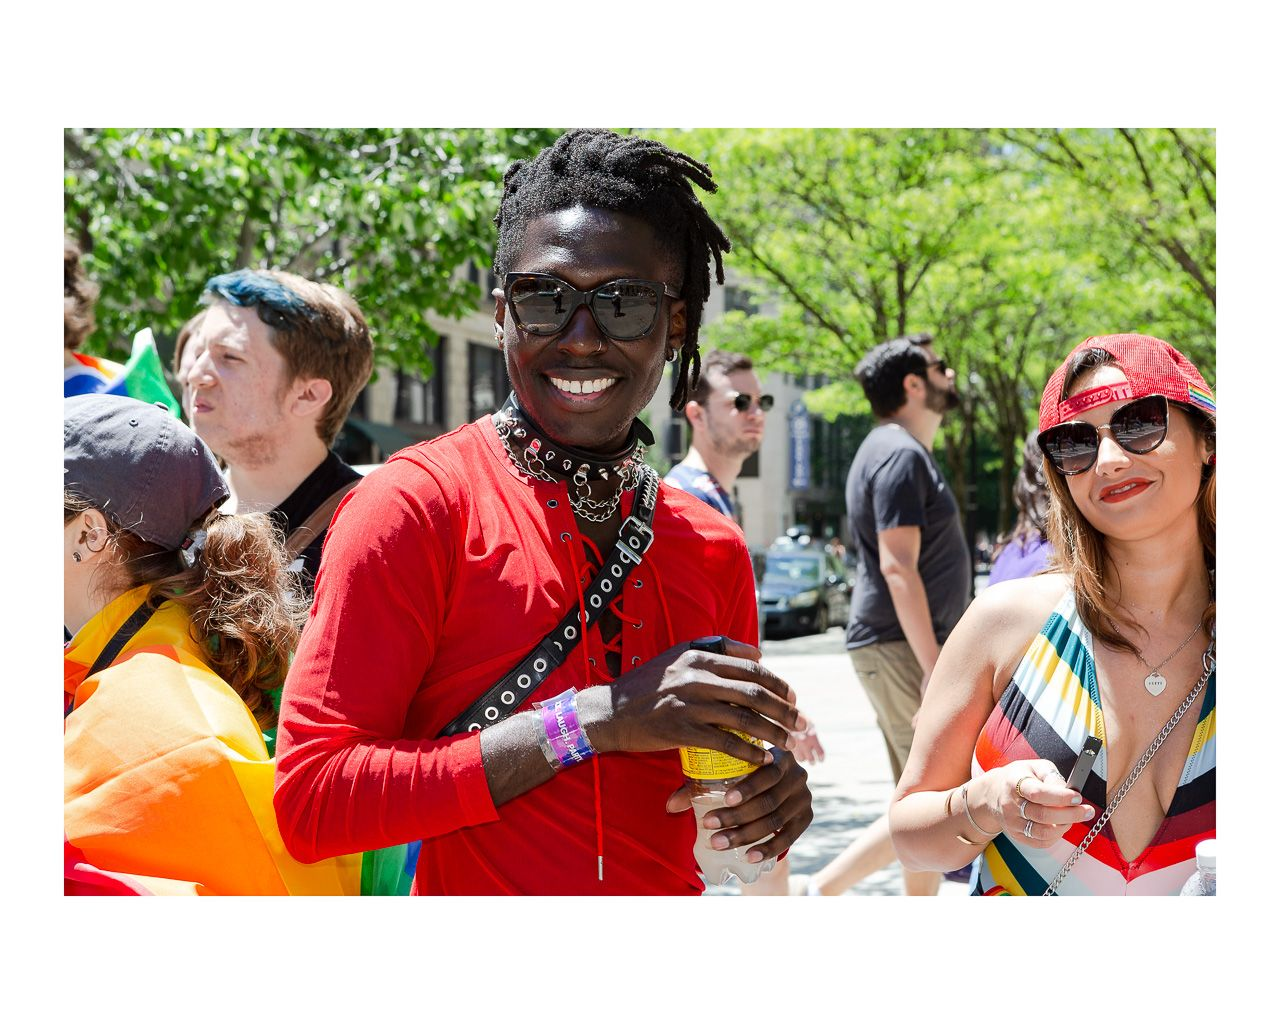 Boston Pride 2019 - wht border - Livebooks20190608 - 06.jpg